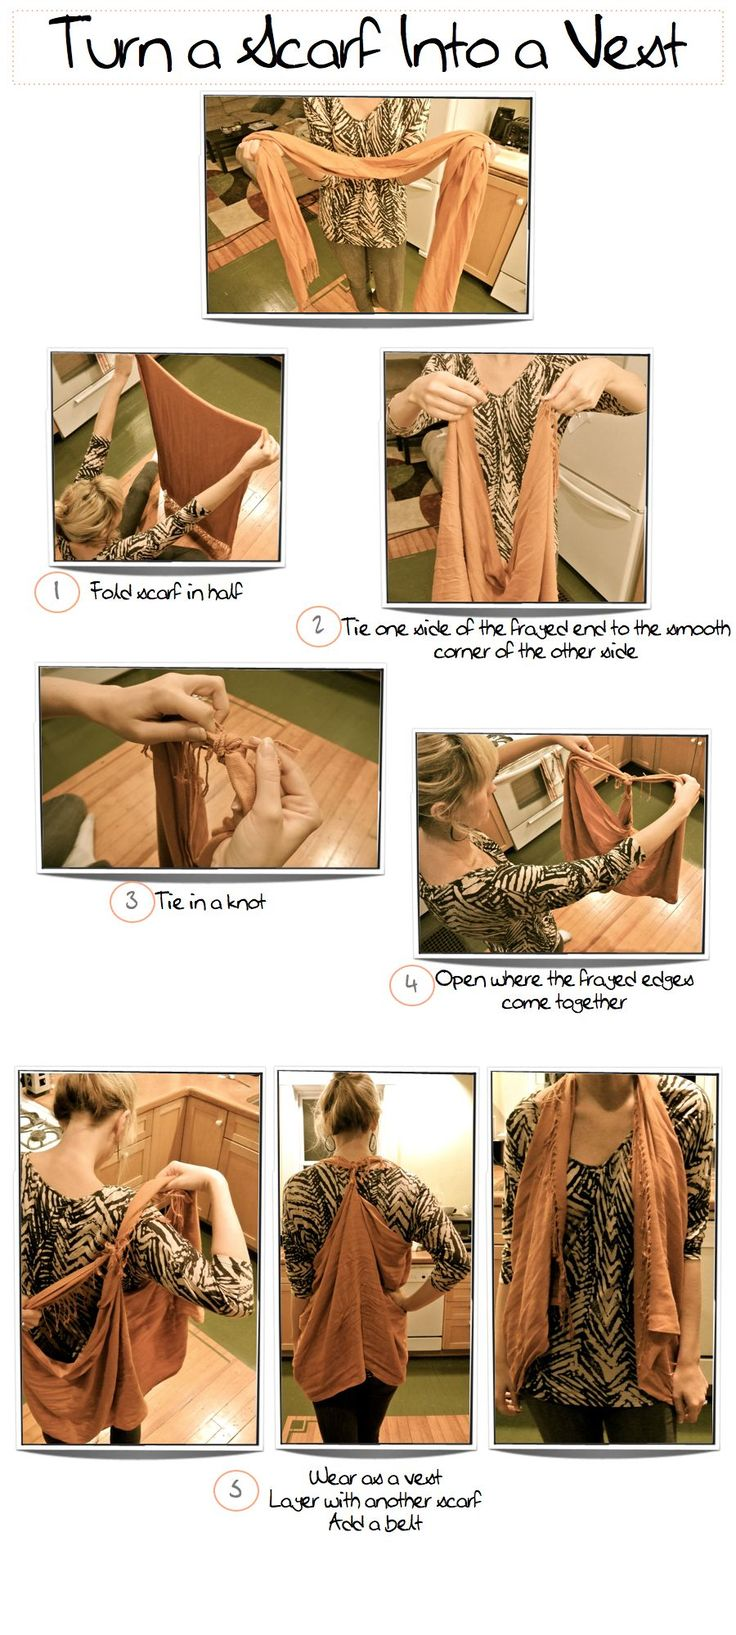 Turn Your Scarf Into a best. MIND BLOWN!!